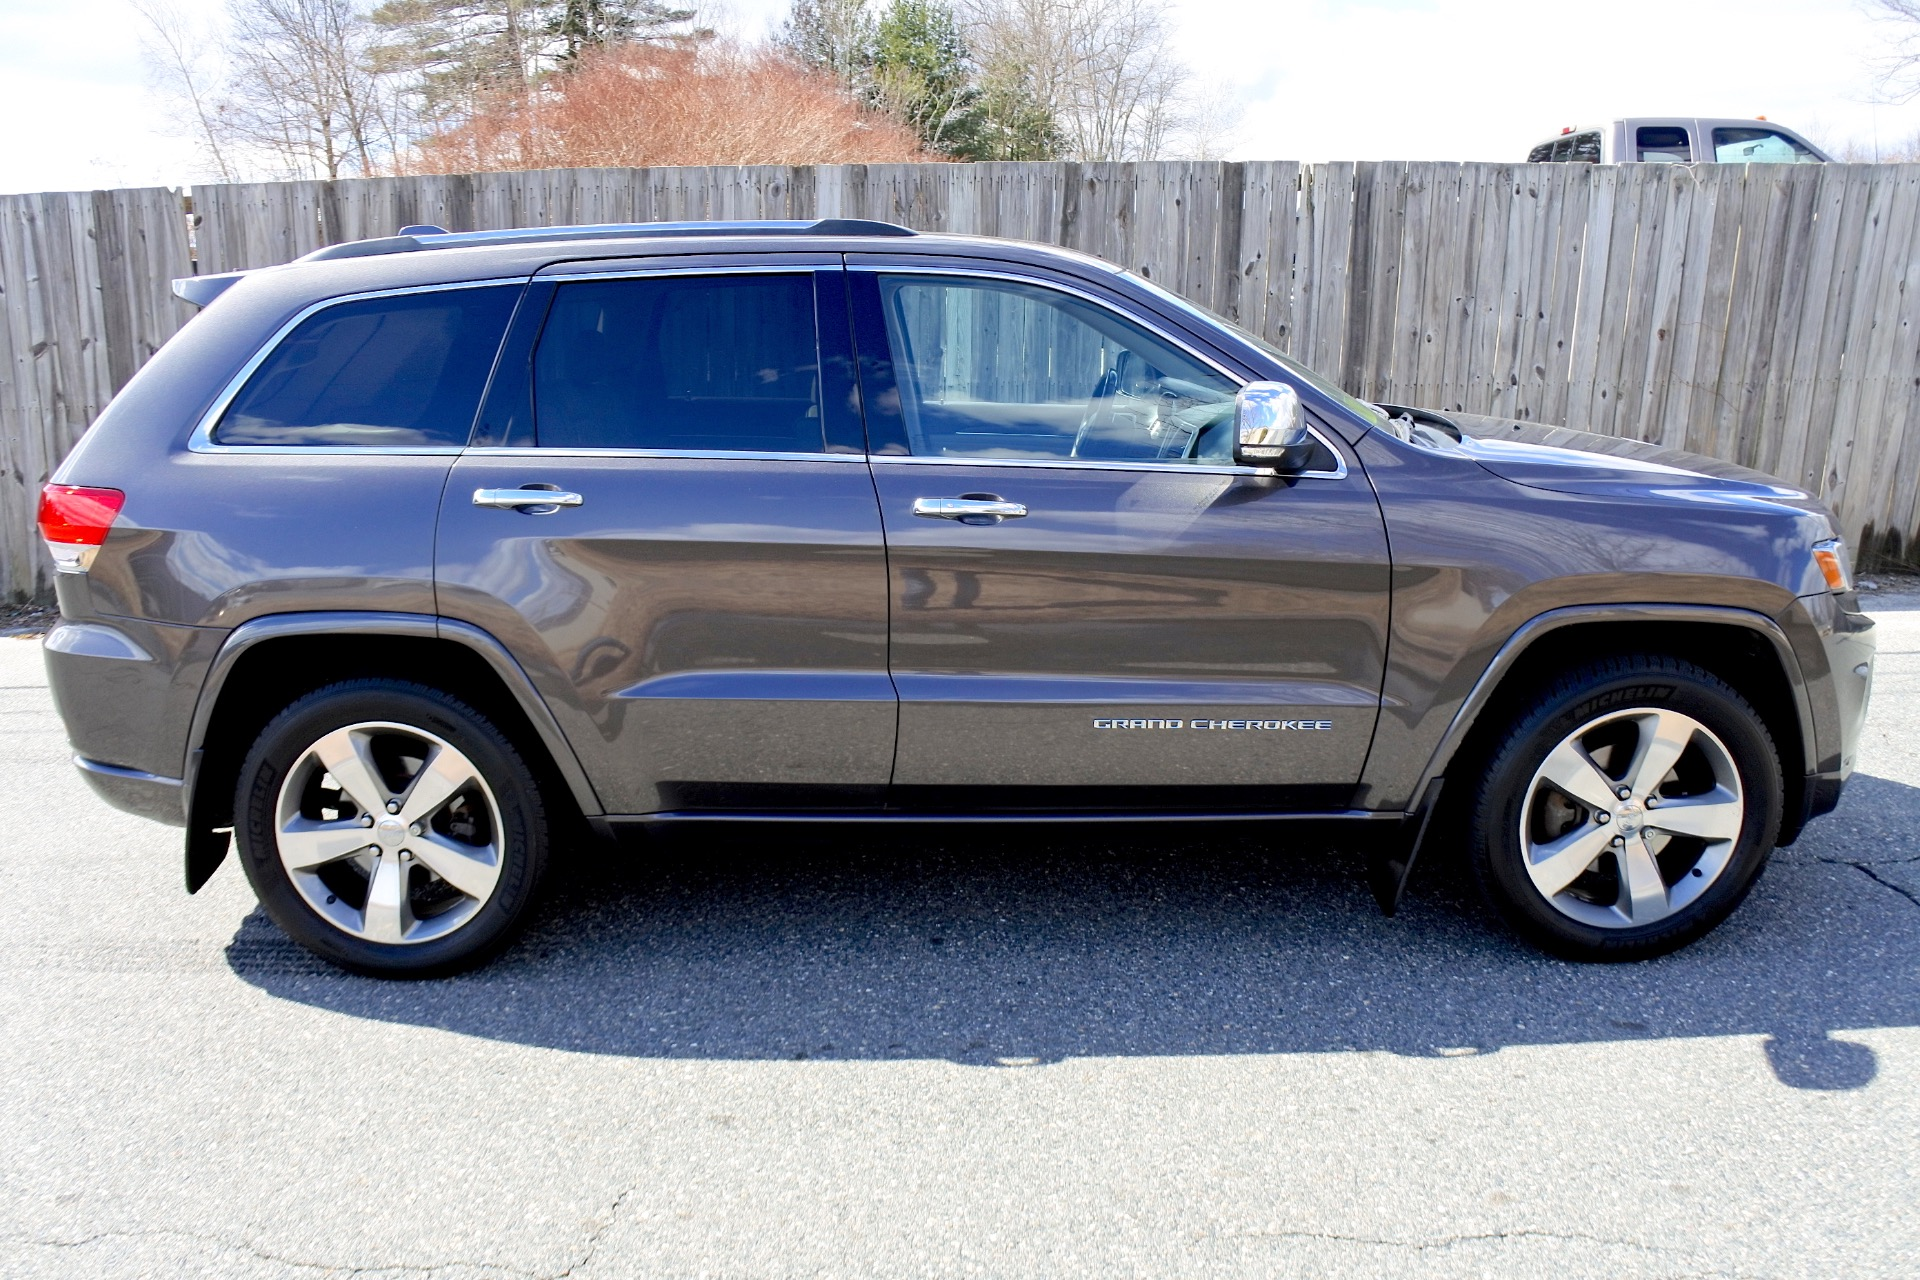 Used 2014 Jeep Grand Cherokee 4WD 4dr Overland Used 2014 Jeep Grand Cherokee 4WD 4dr Overland for sale  at Metro West Motorcars LLC in Shrewsbury MA 6